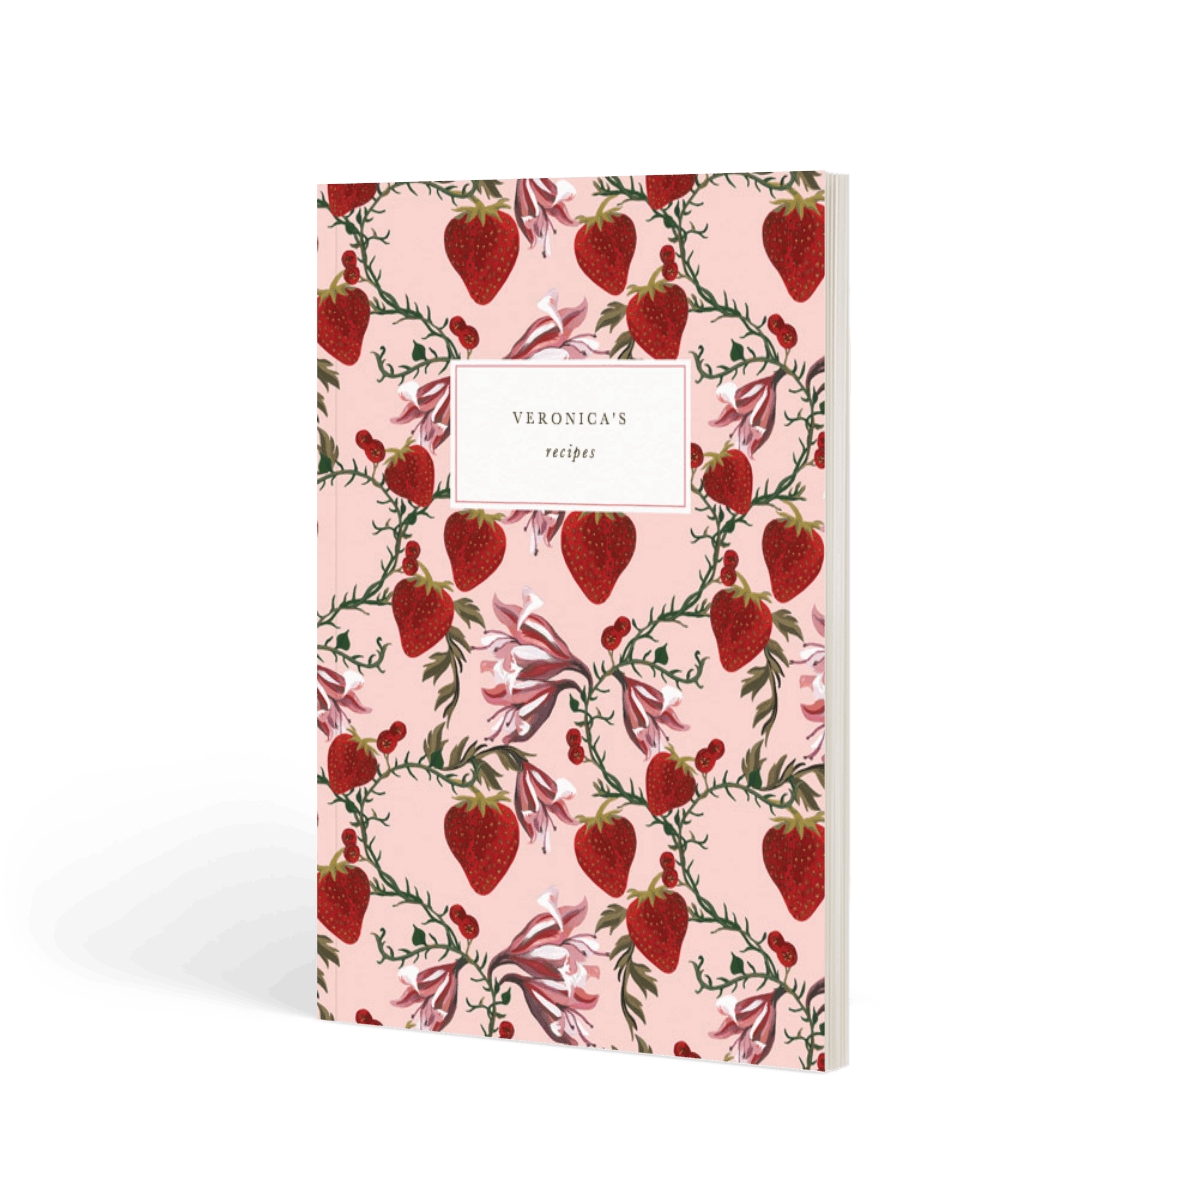 Https%3a%2f%2fwww.papier.com%2fproduct image%2f45389%2f6%2fstrawberry floral 11253 front 1539706857.png?ixlib=rb 1.1